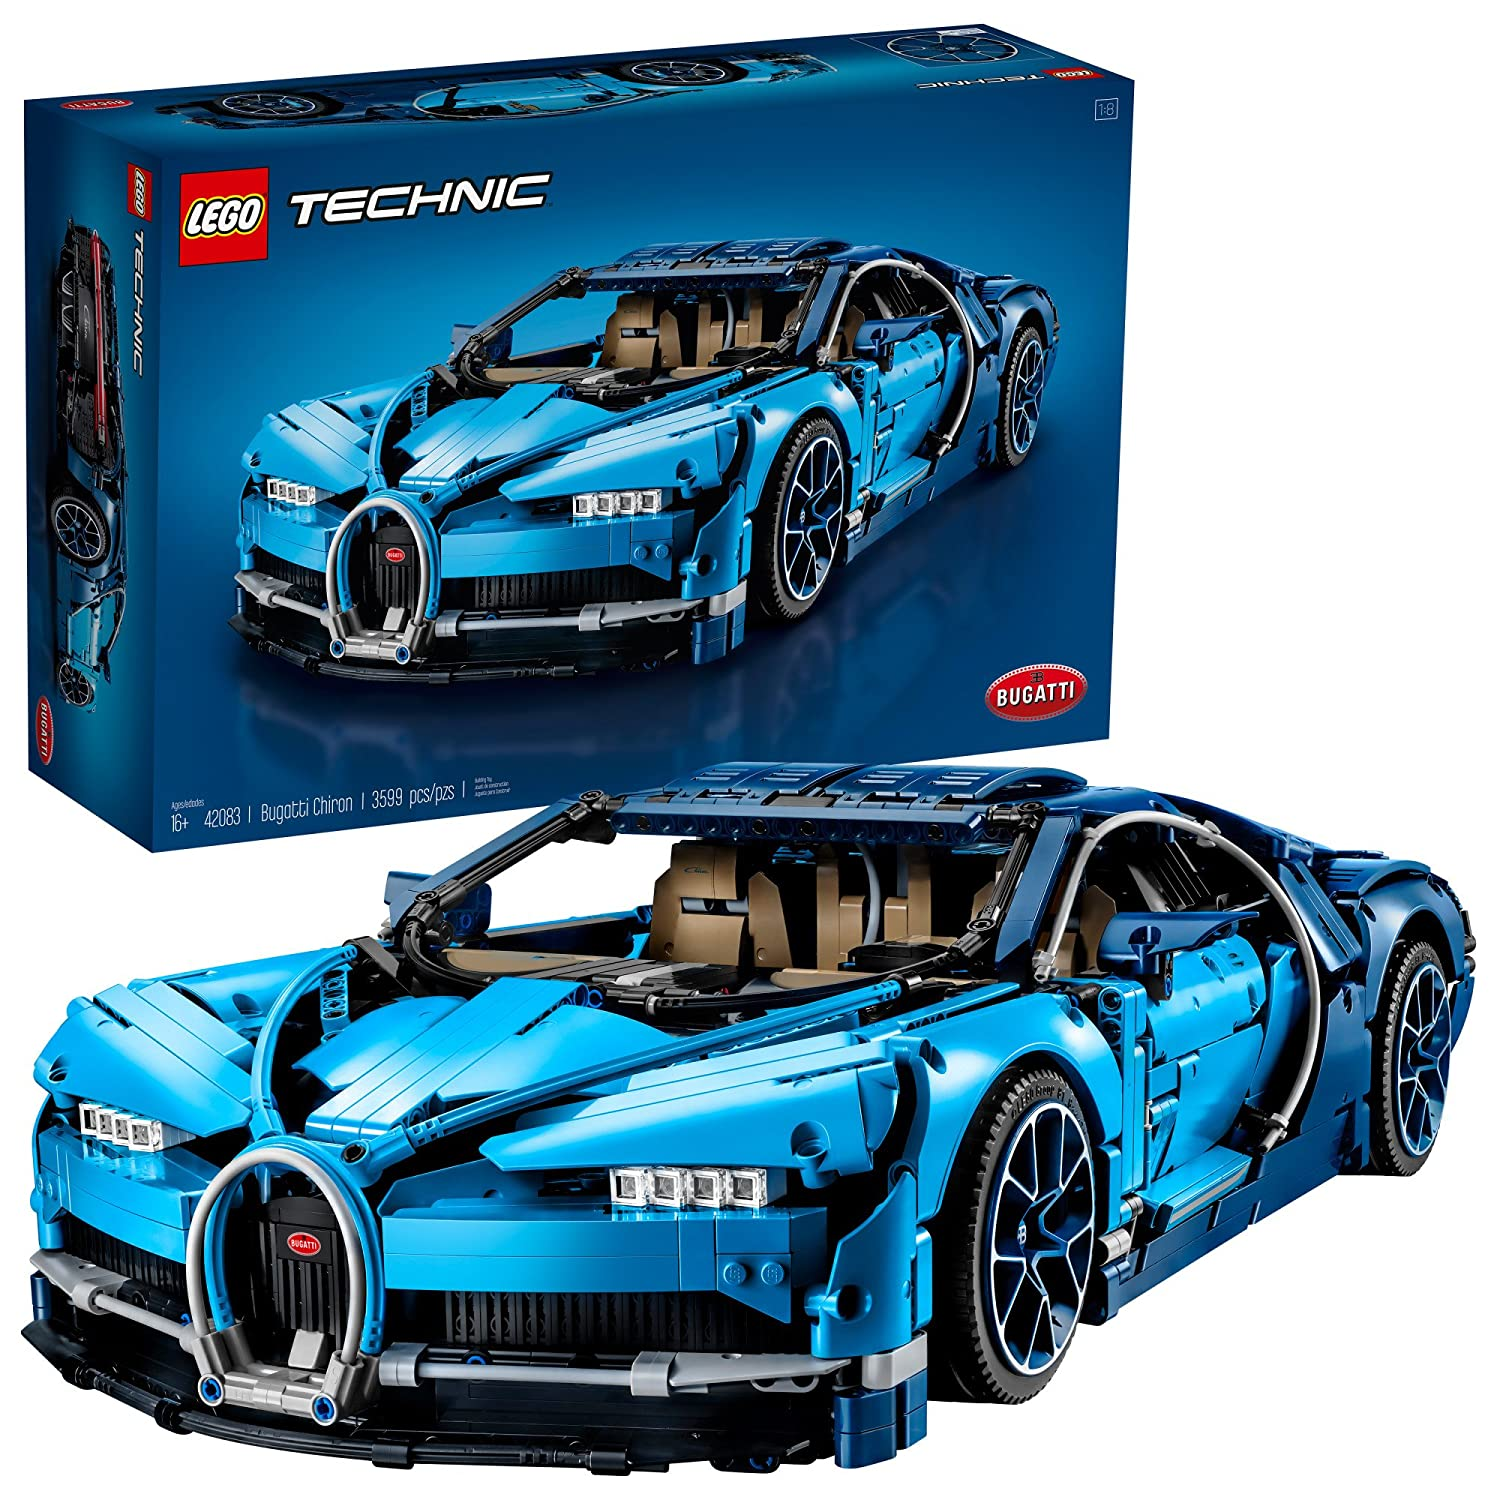 Lego Technic Bugatti Chiron 42083 Race Car Building Kit Veyron W16 Engine Diagram And Engineering Toy Adult Collectible Sports With Scale Model 3599 Piece